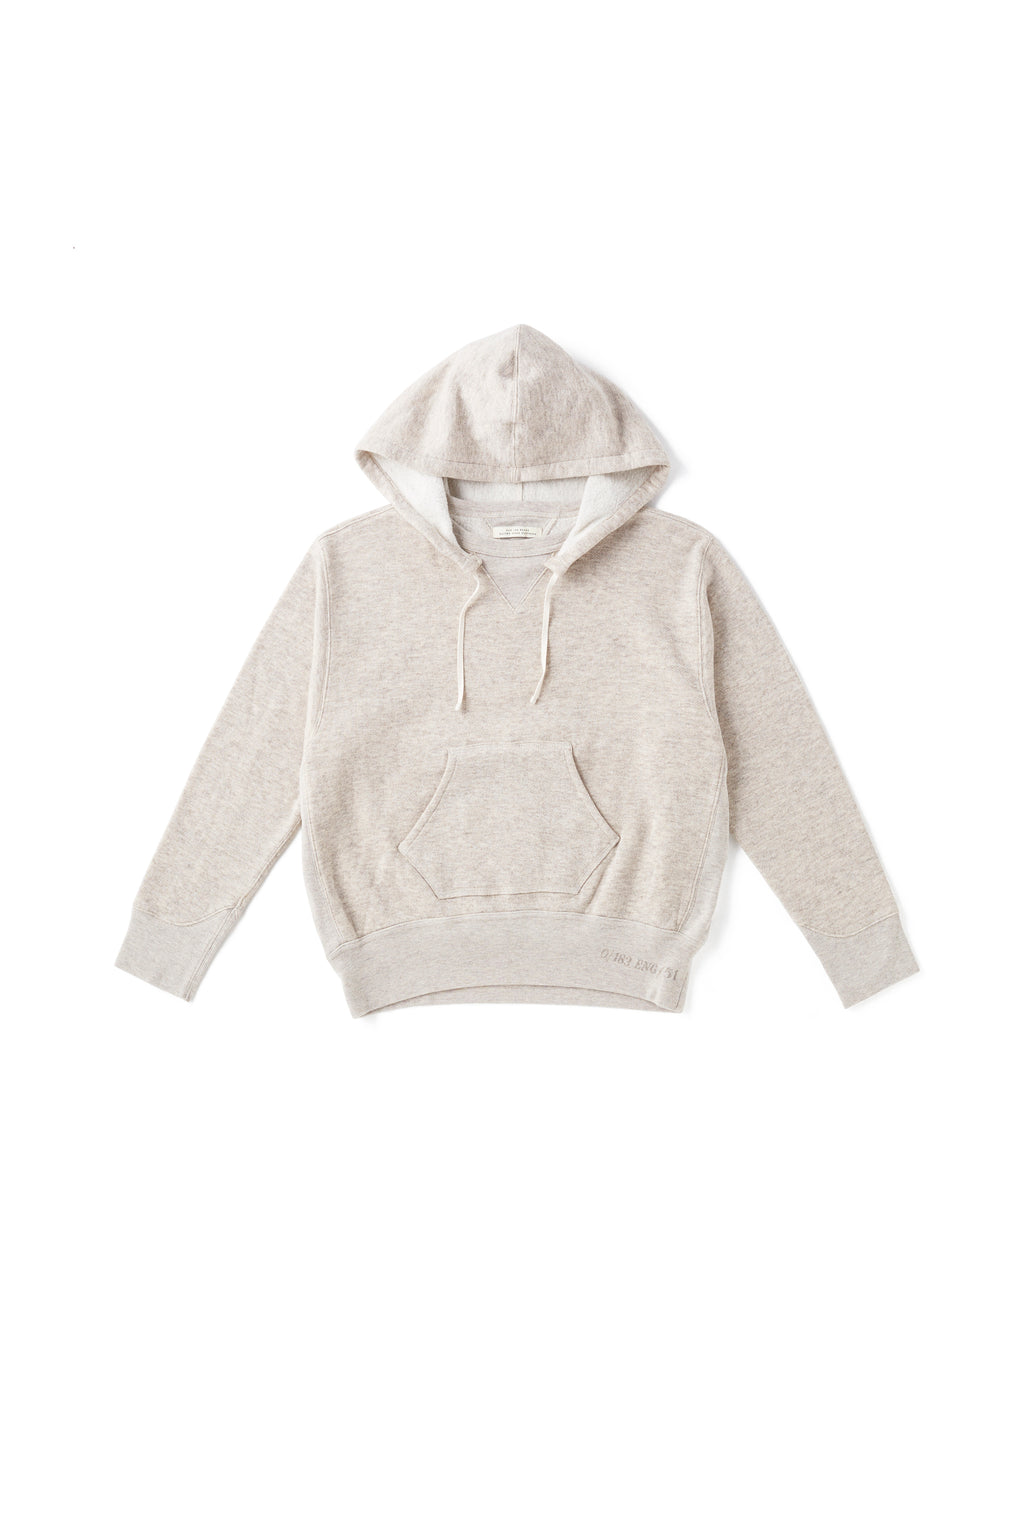 YAK COTTON SWEAT HOODIE - 202OJ-CT01